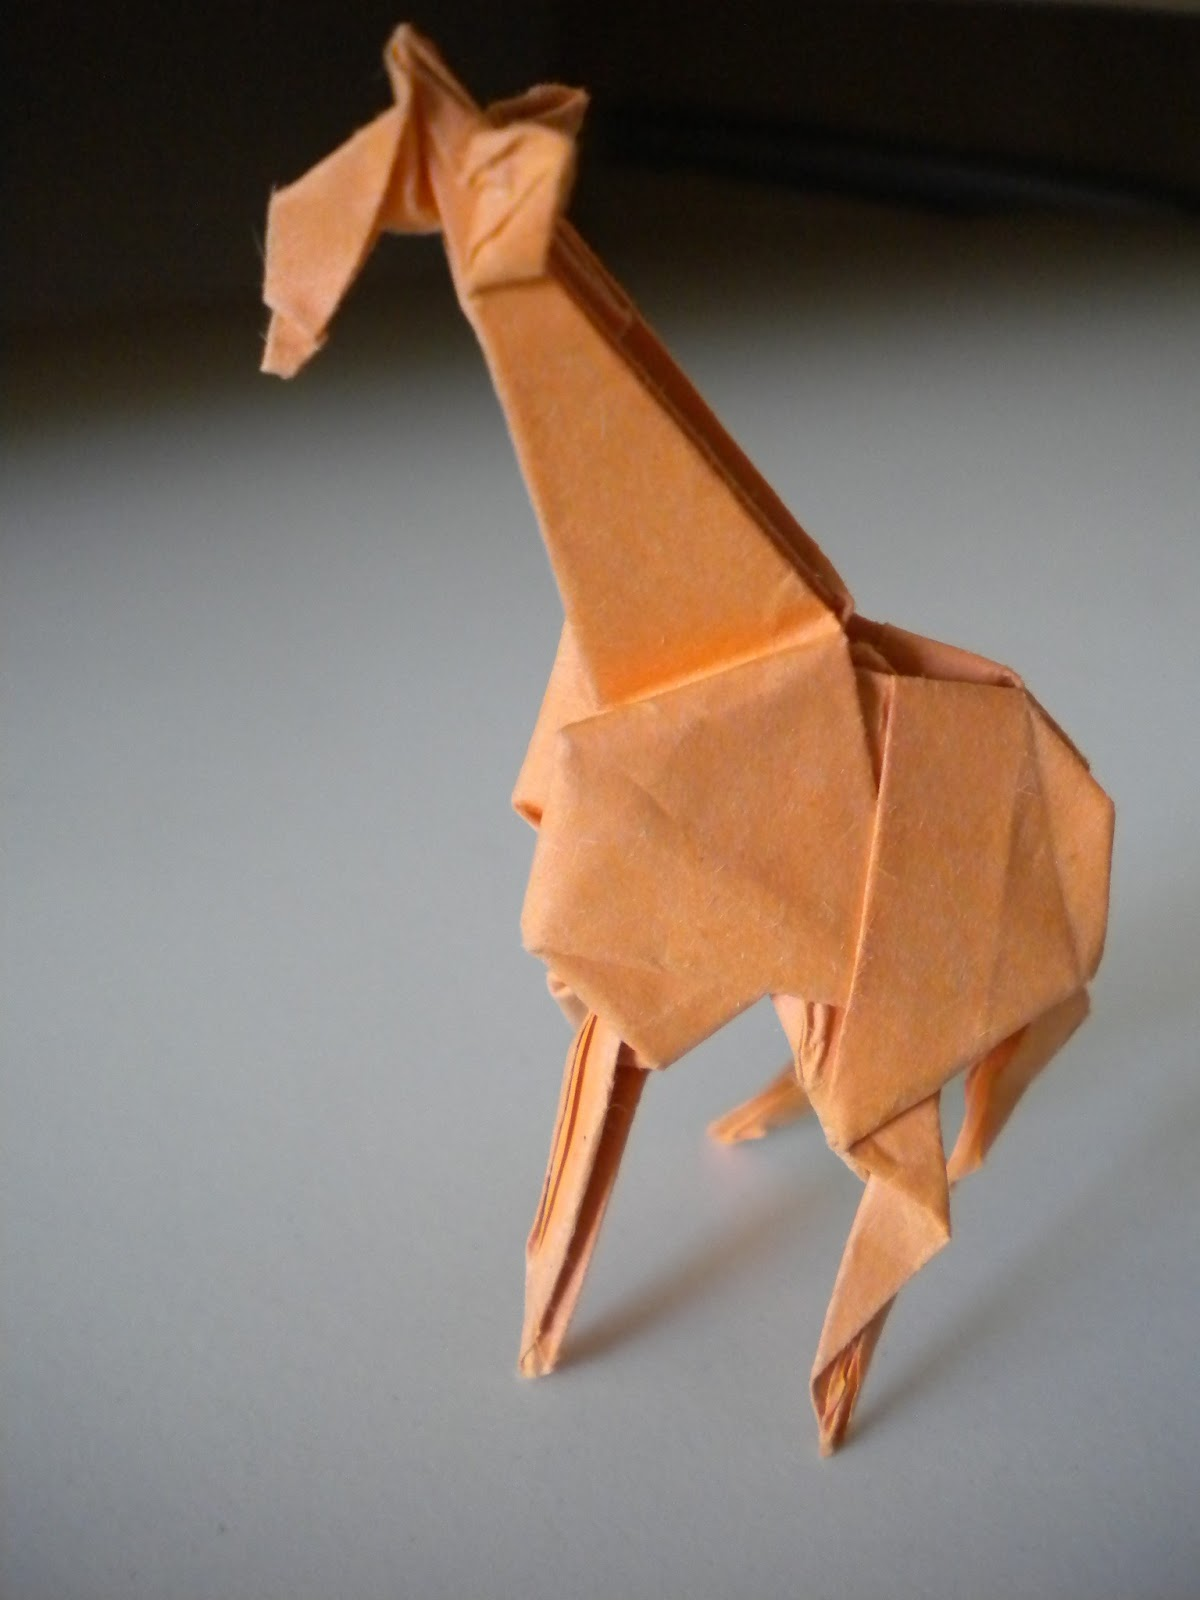 Curious Charisma Origami Giraffe Diagram This Is An Intermediate Fold It Requires Some Sinking But For The Most Part Instructions Are Clear